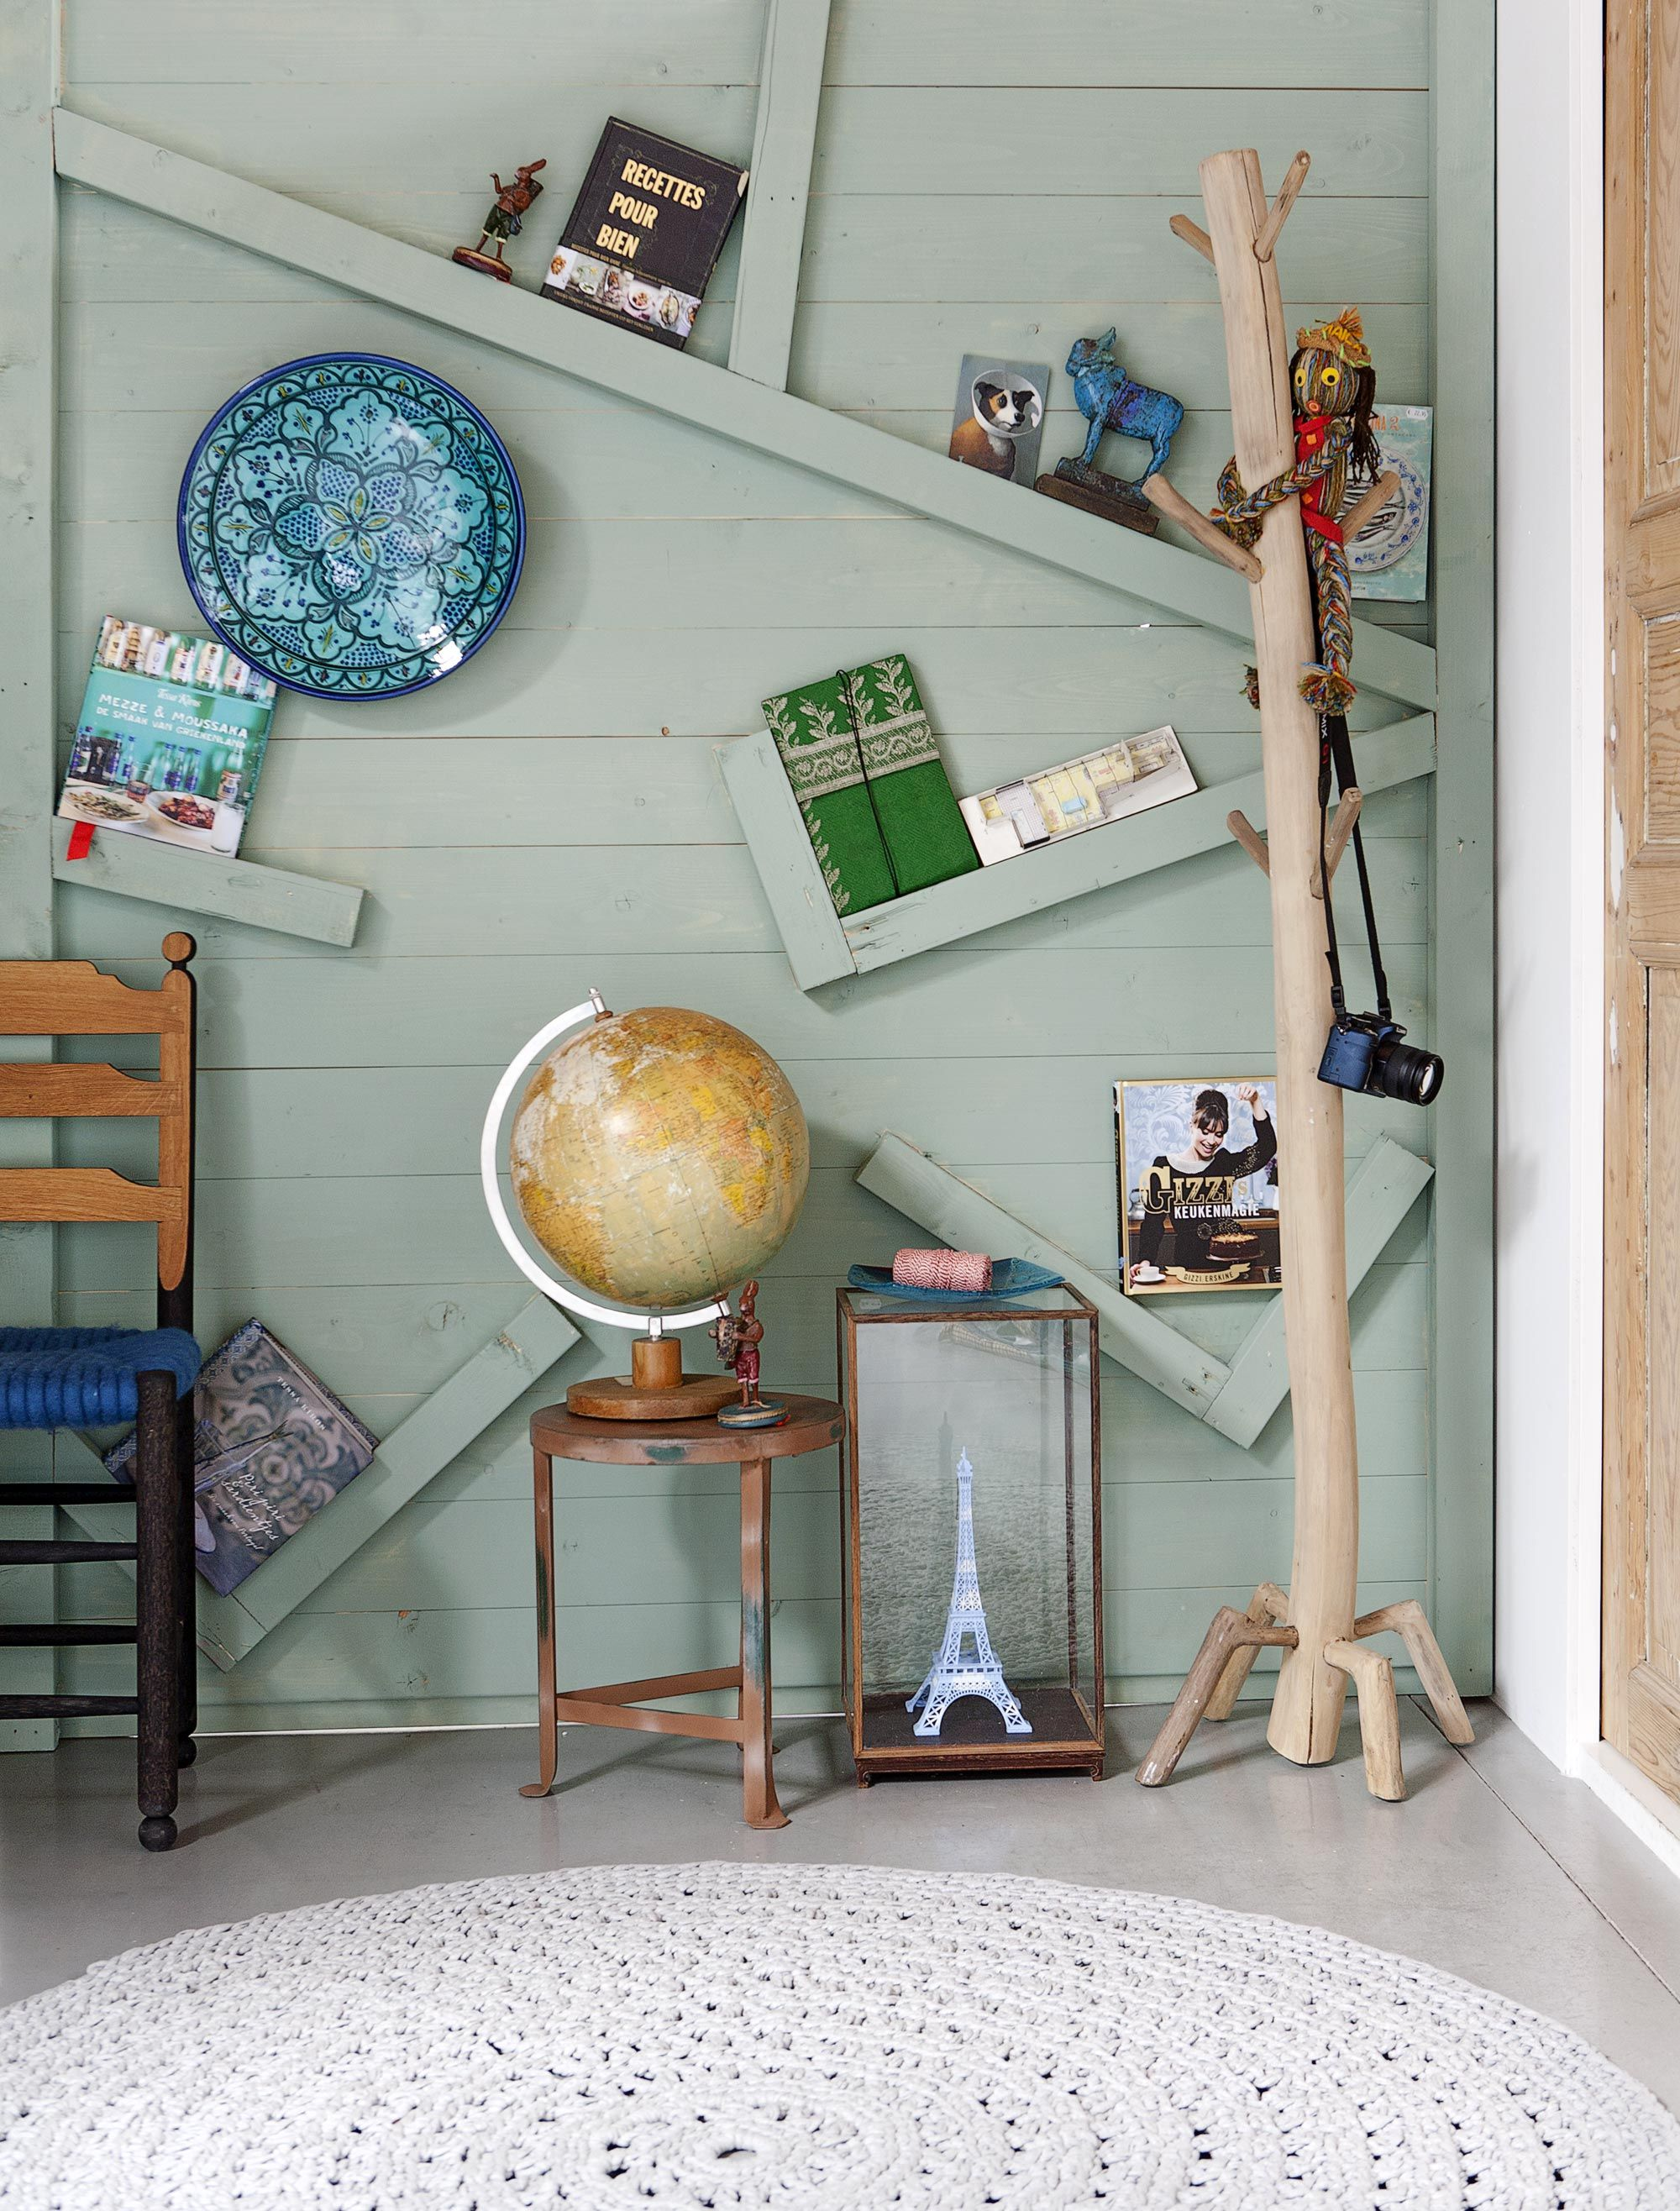 Whimsical Shelves Whimsical Shelving Whimsical Decor Bookshelves Kids